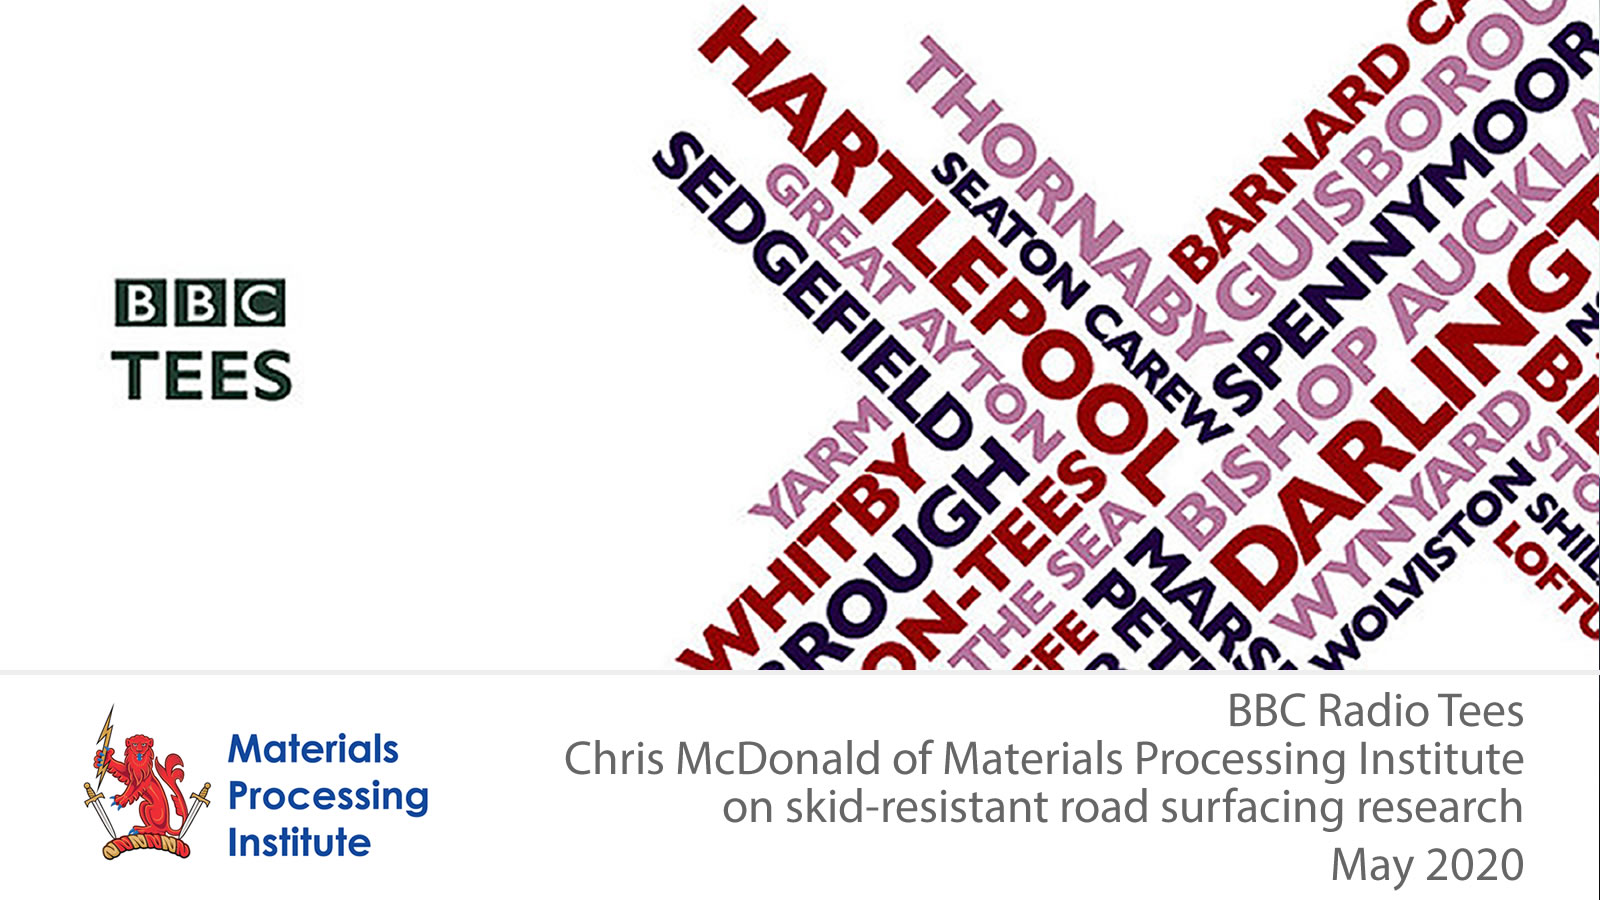 Chris McDonald of Materials Processing Institute on Skid-resistant Road Surfacing Research - May 2020